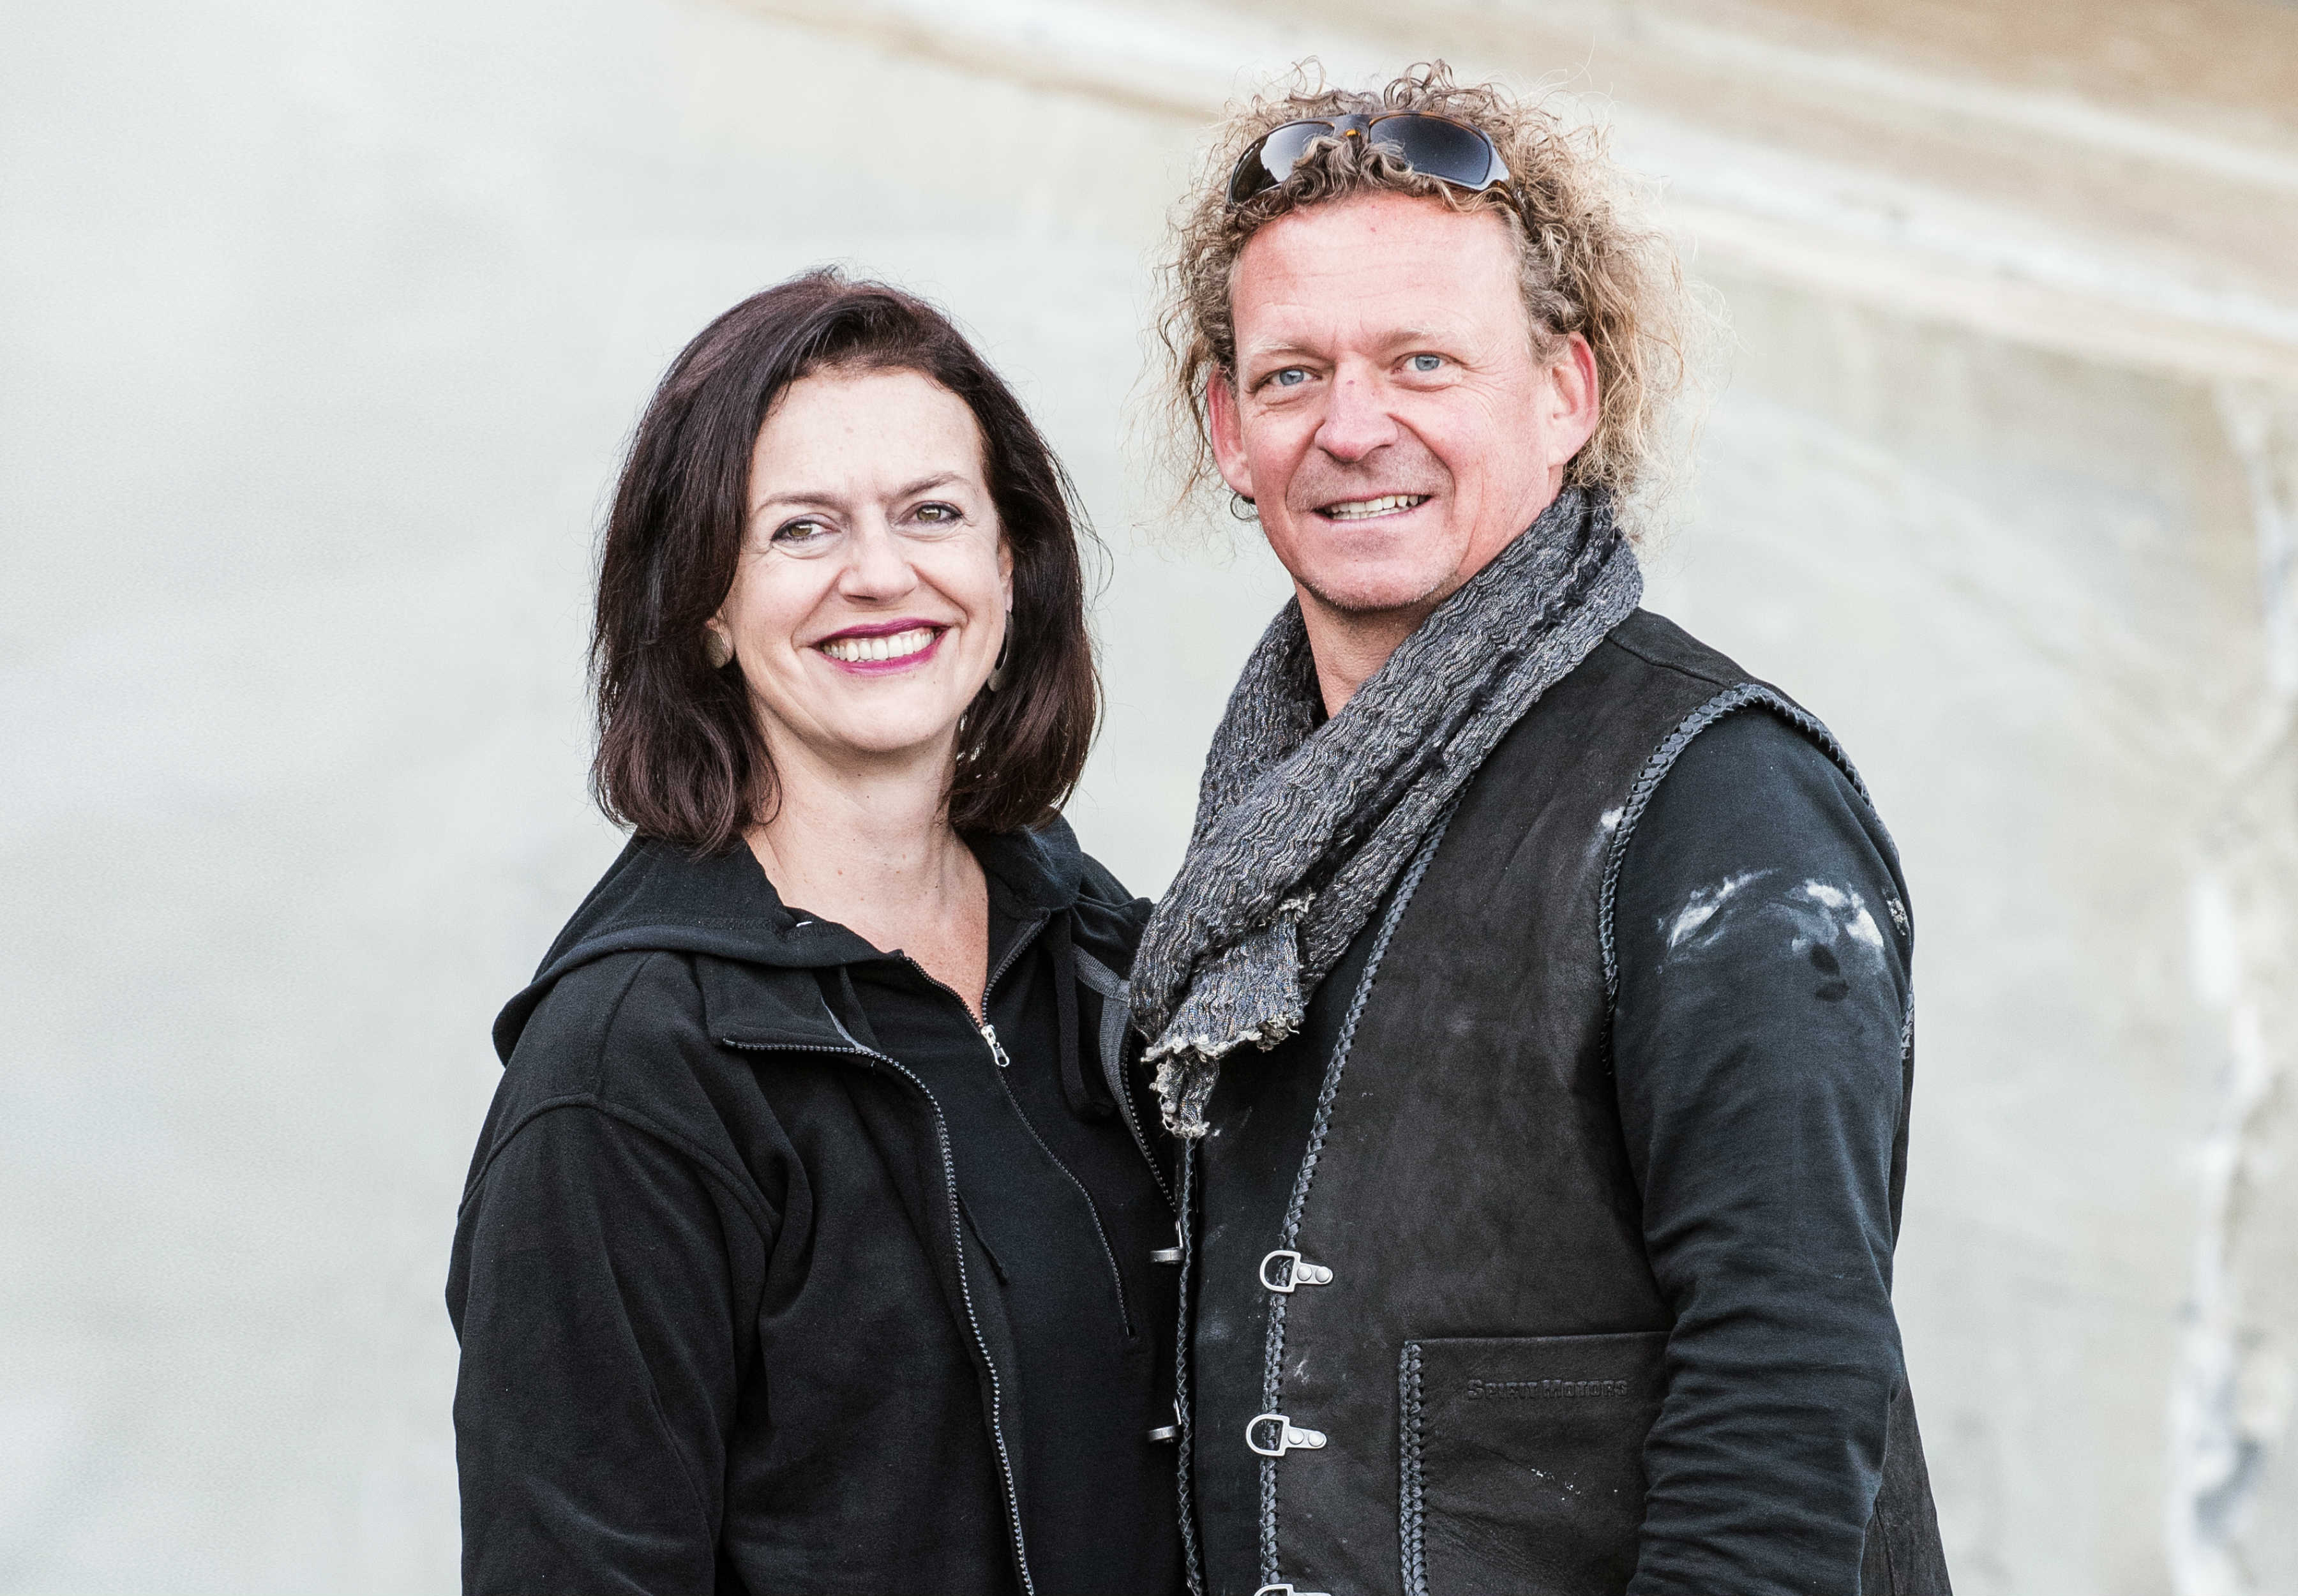 Beate Hoyer and Andreas Reichlin